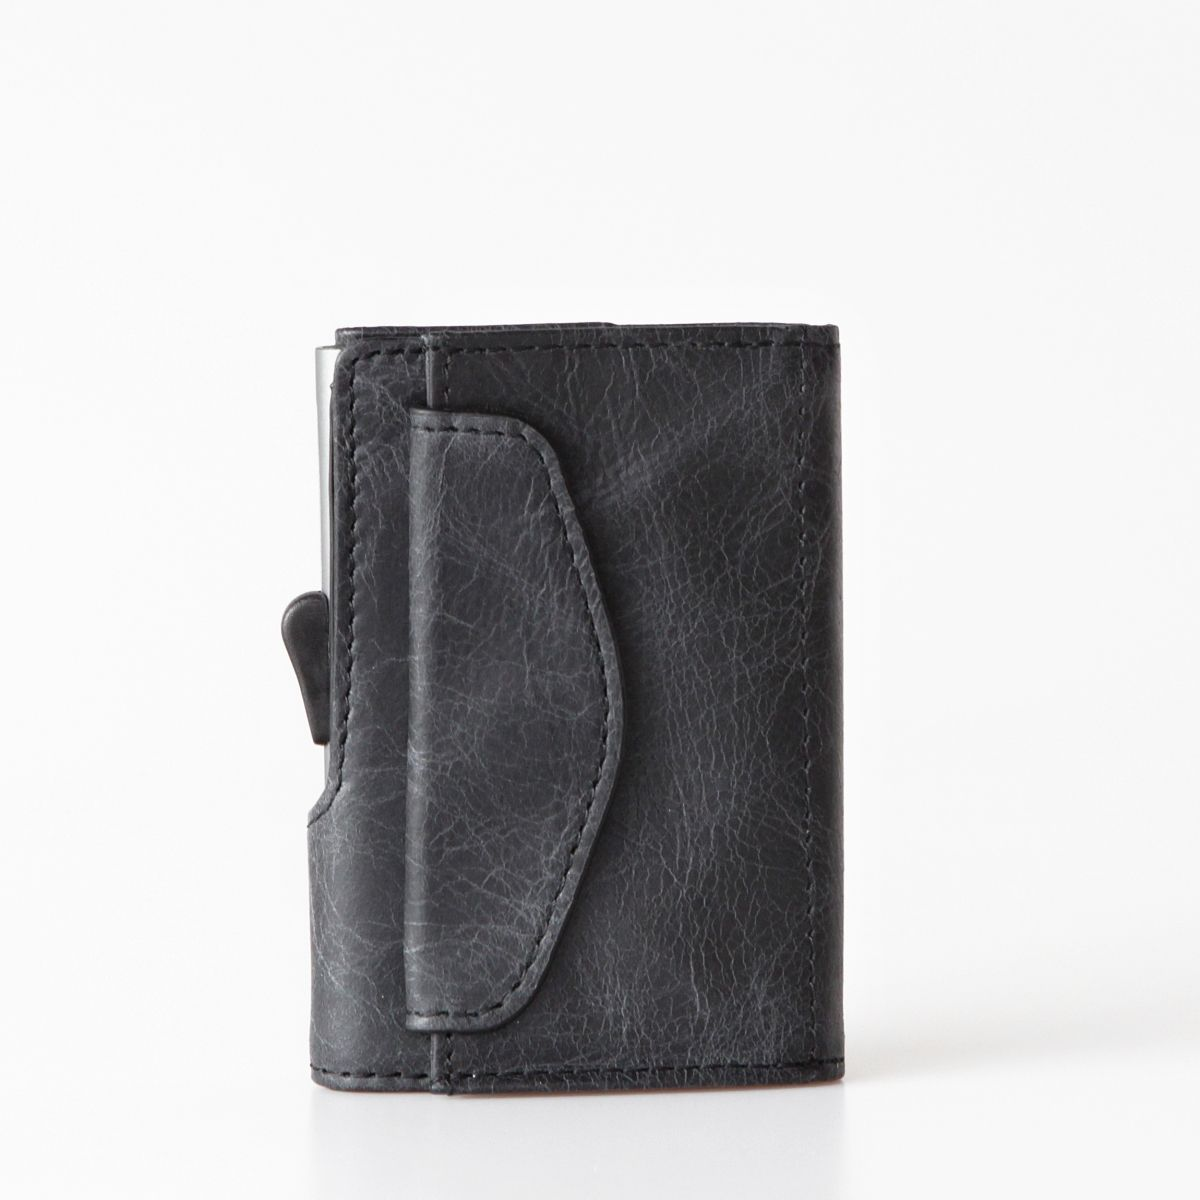 C-Secure Aluminum Card Holder with Genuine Leather and Coin Pouch - Blackwood